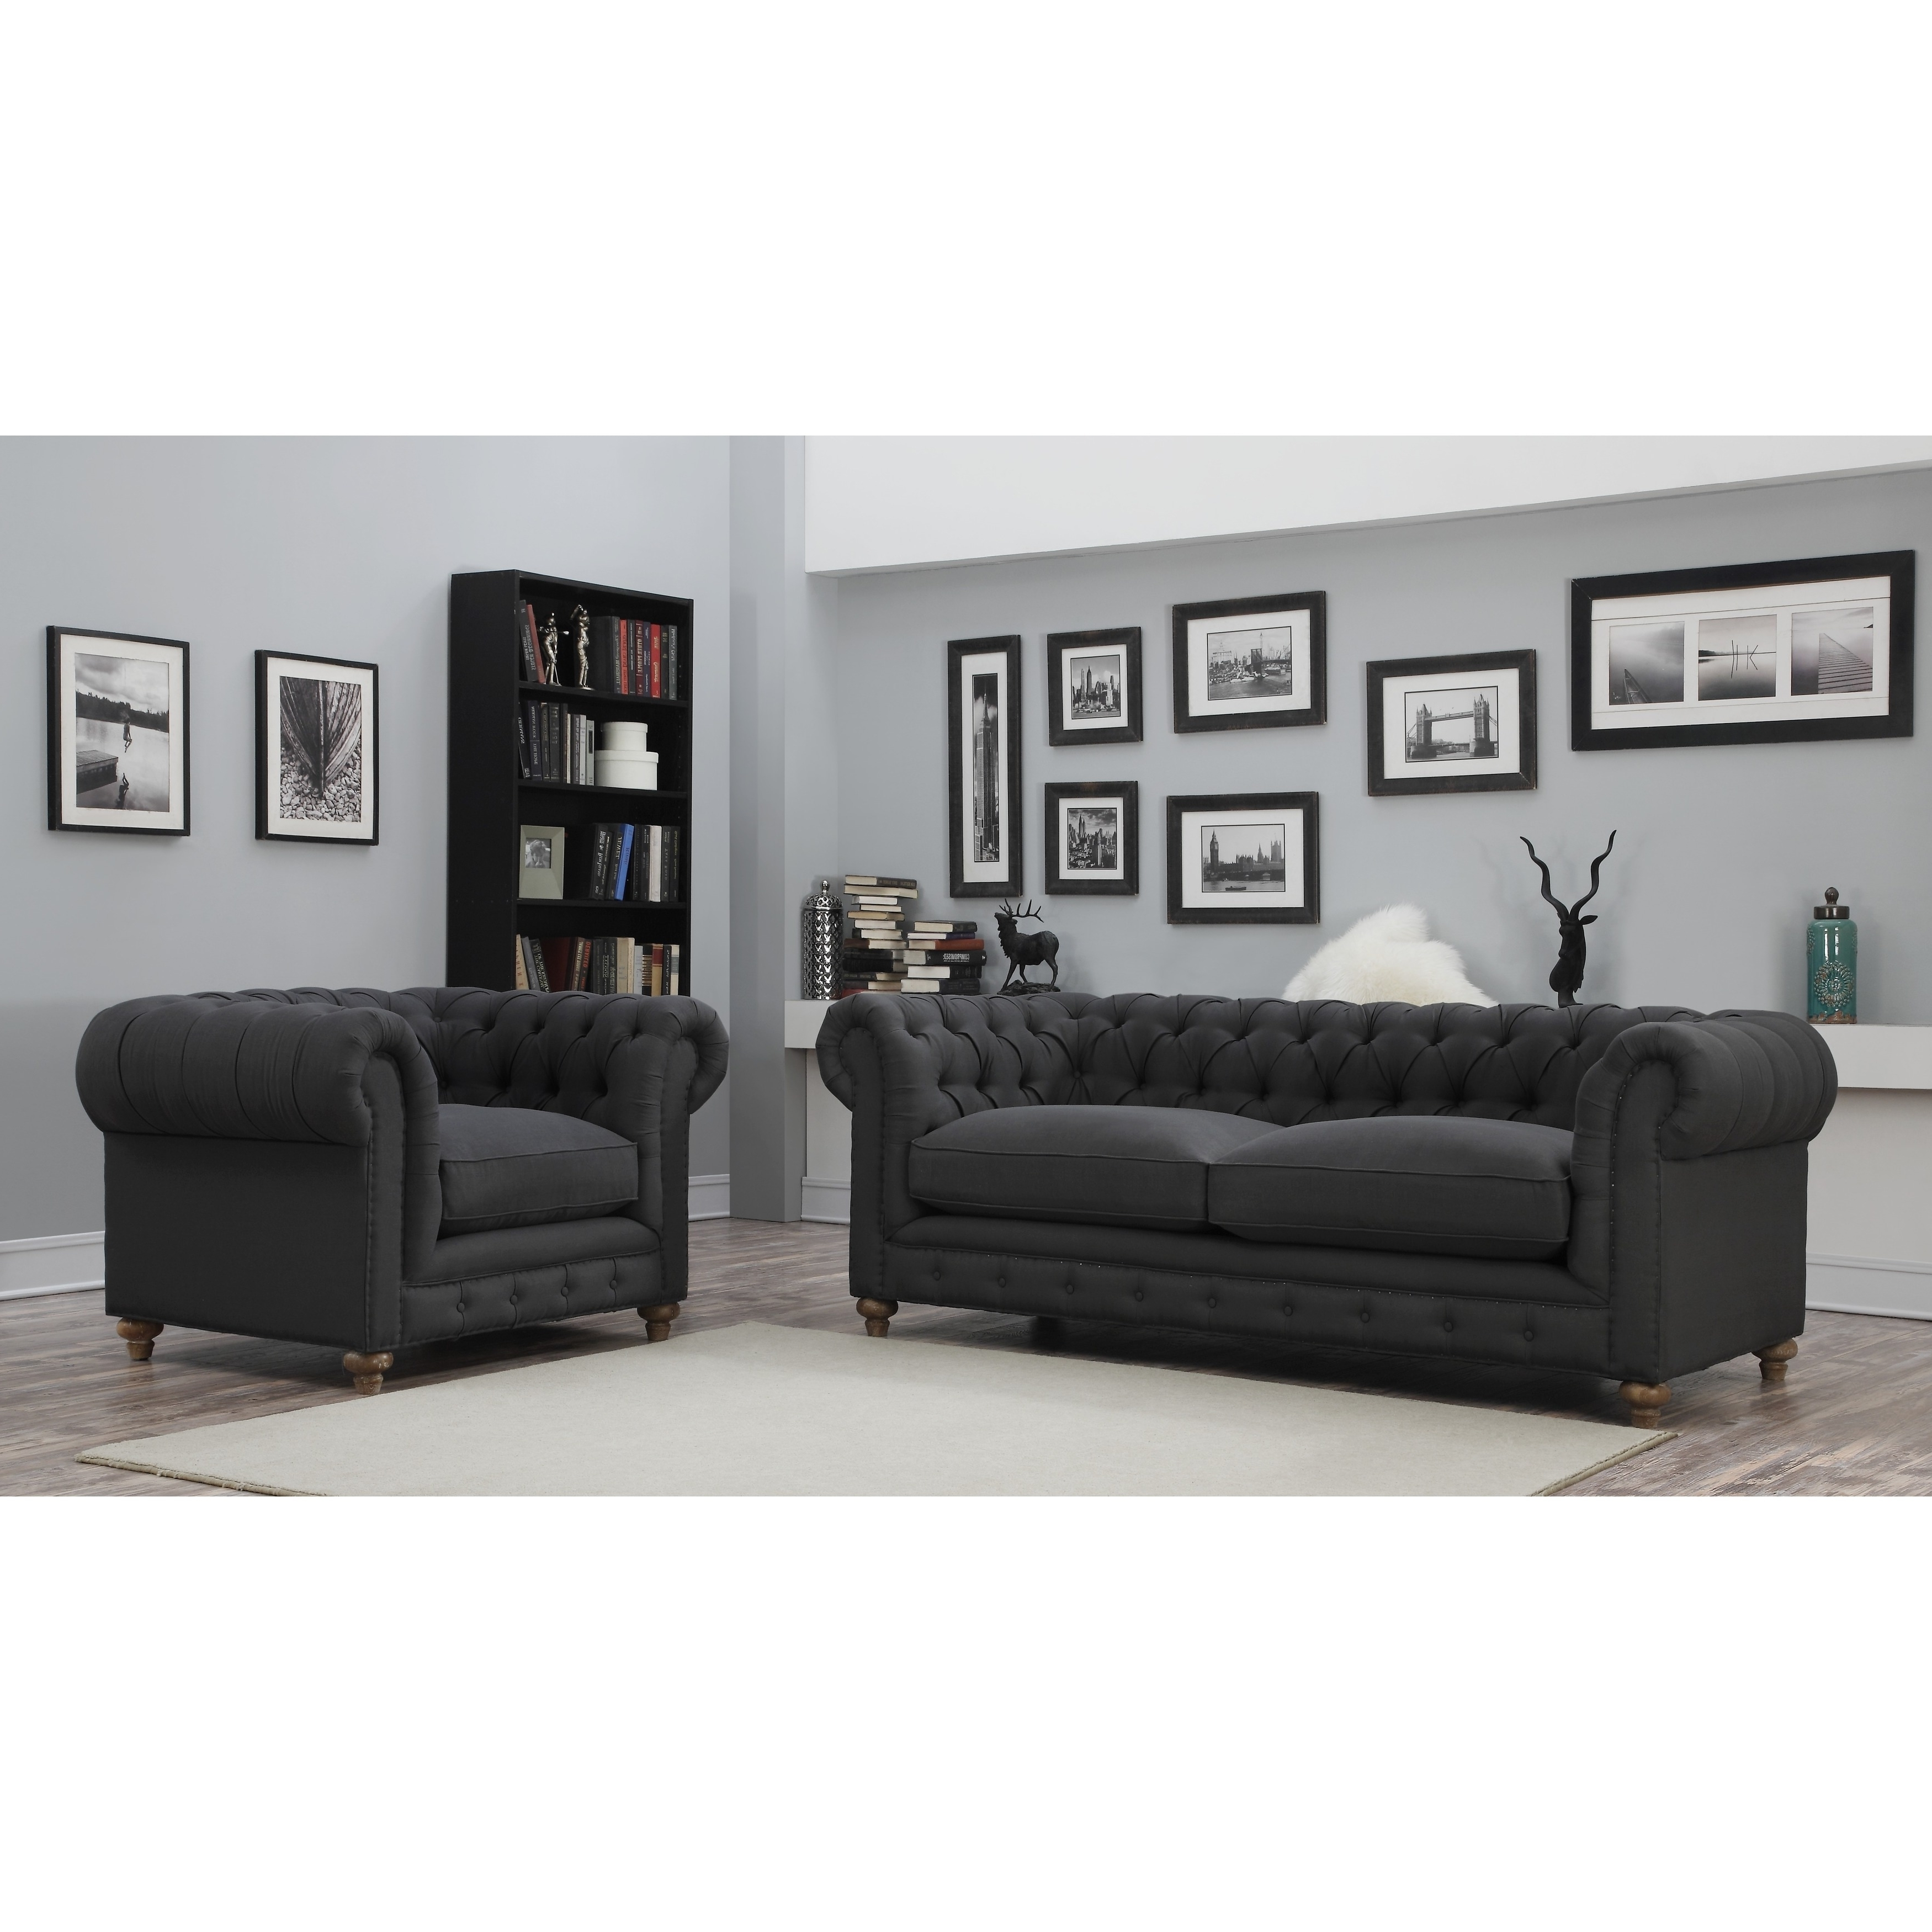 Oxford Sofas With Regard To Trendy Oxford Grey Linen Tufted Sofa – Free Shipping Today – Overstock (View 16 of 20)